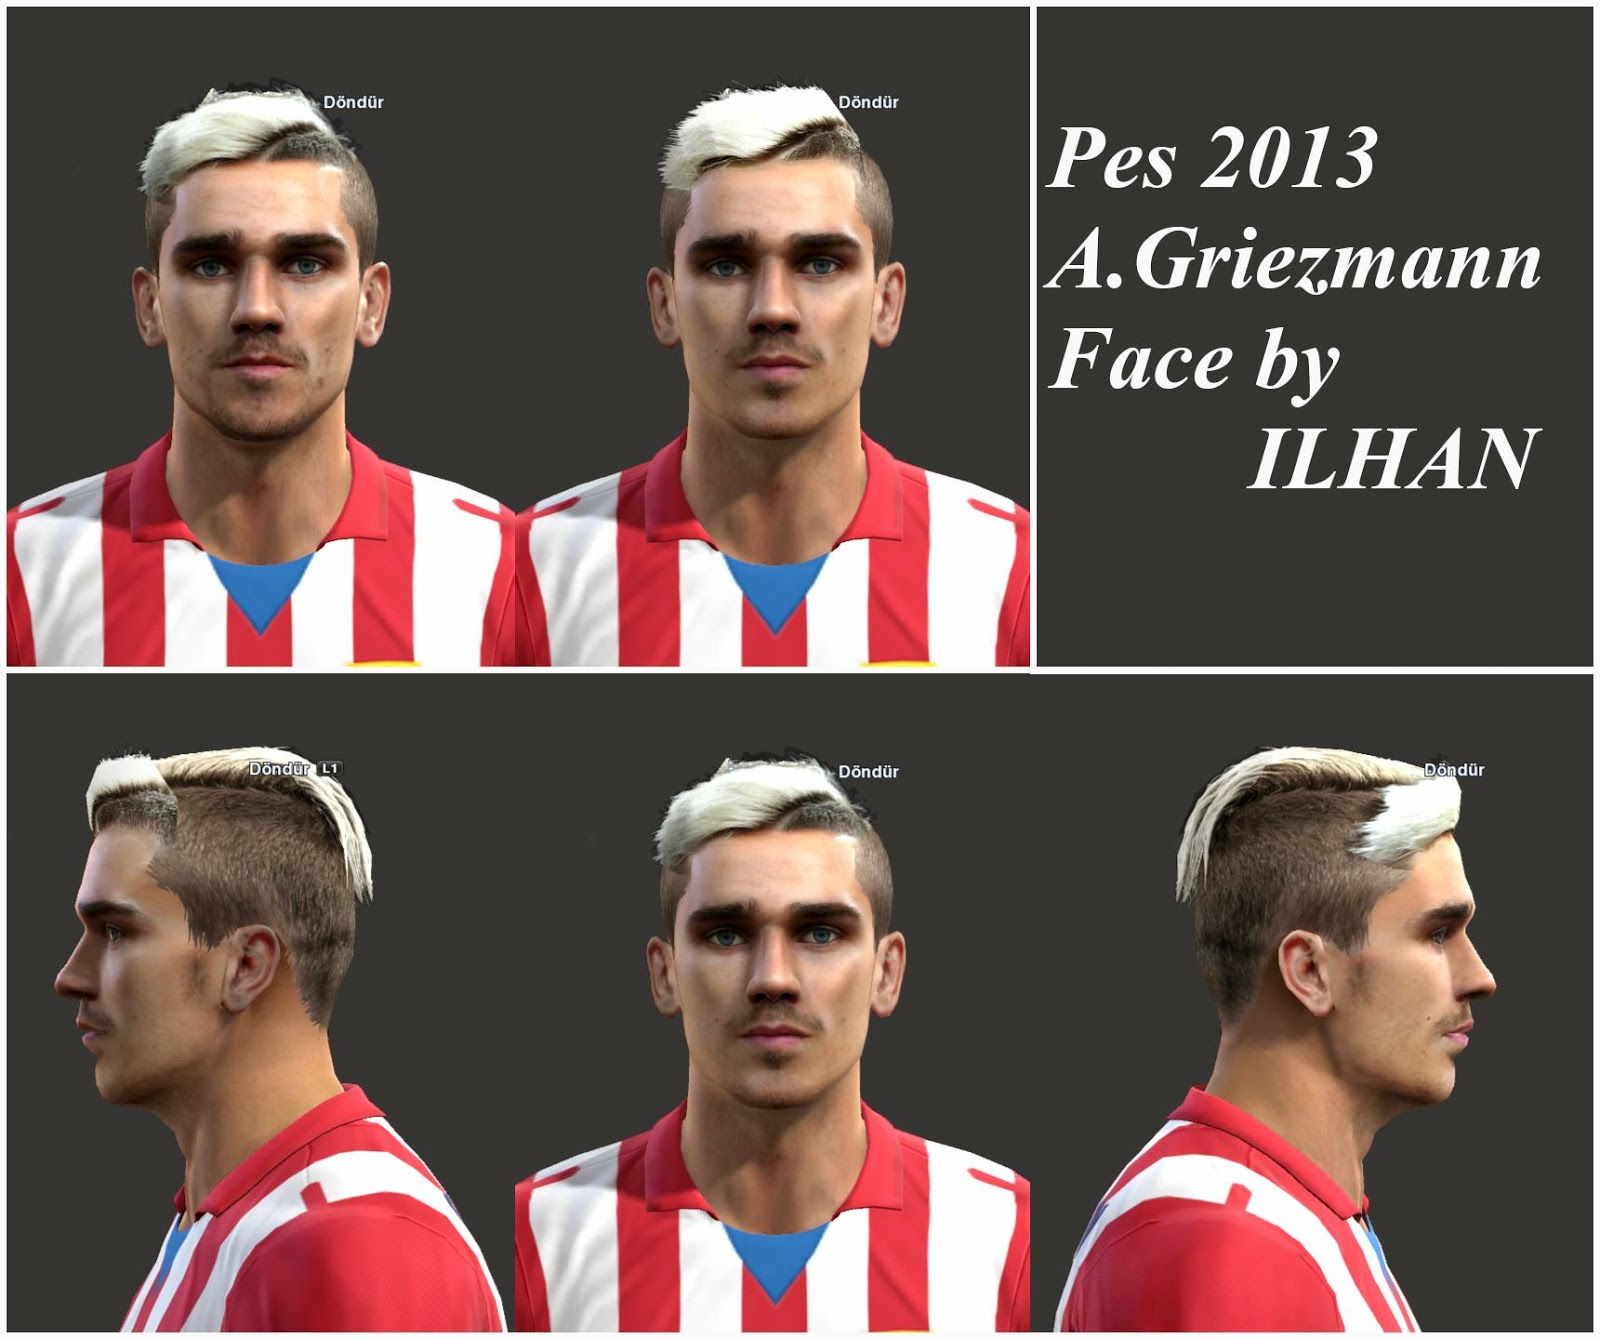 Ultigamerz Pes 2010 Pes 2011 Face: PES-MODIF: Pes 2013 A.Griezmann Face By Ilhan